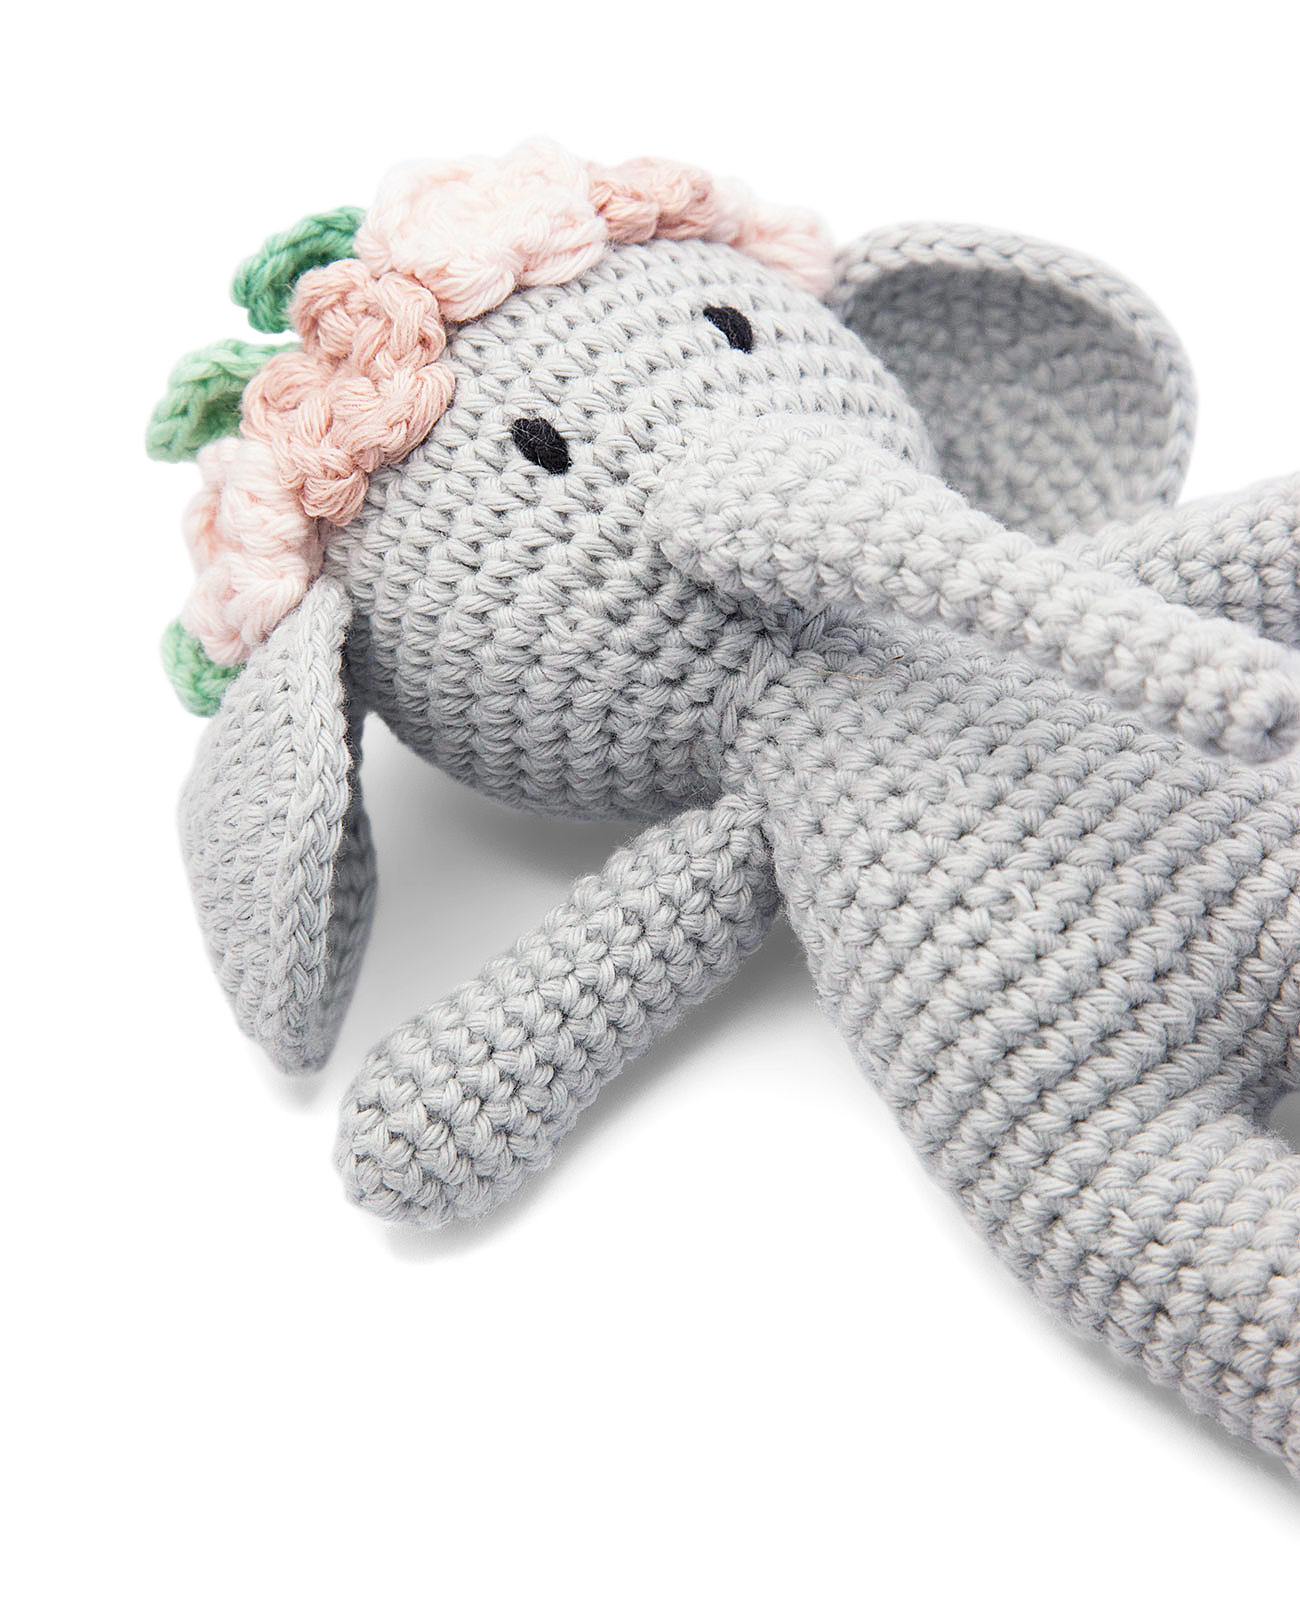 handmade fairtrade handmade bunny crocheted teddy